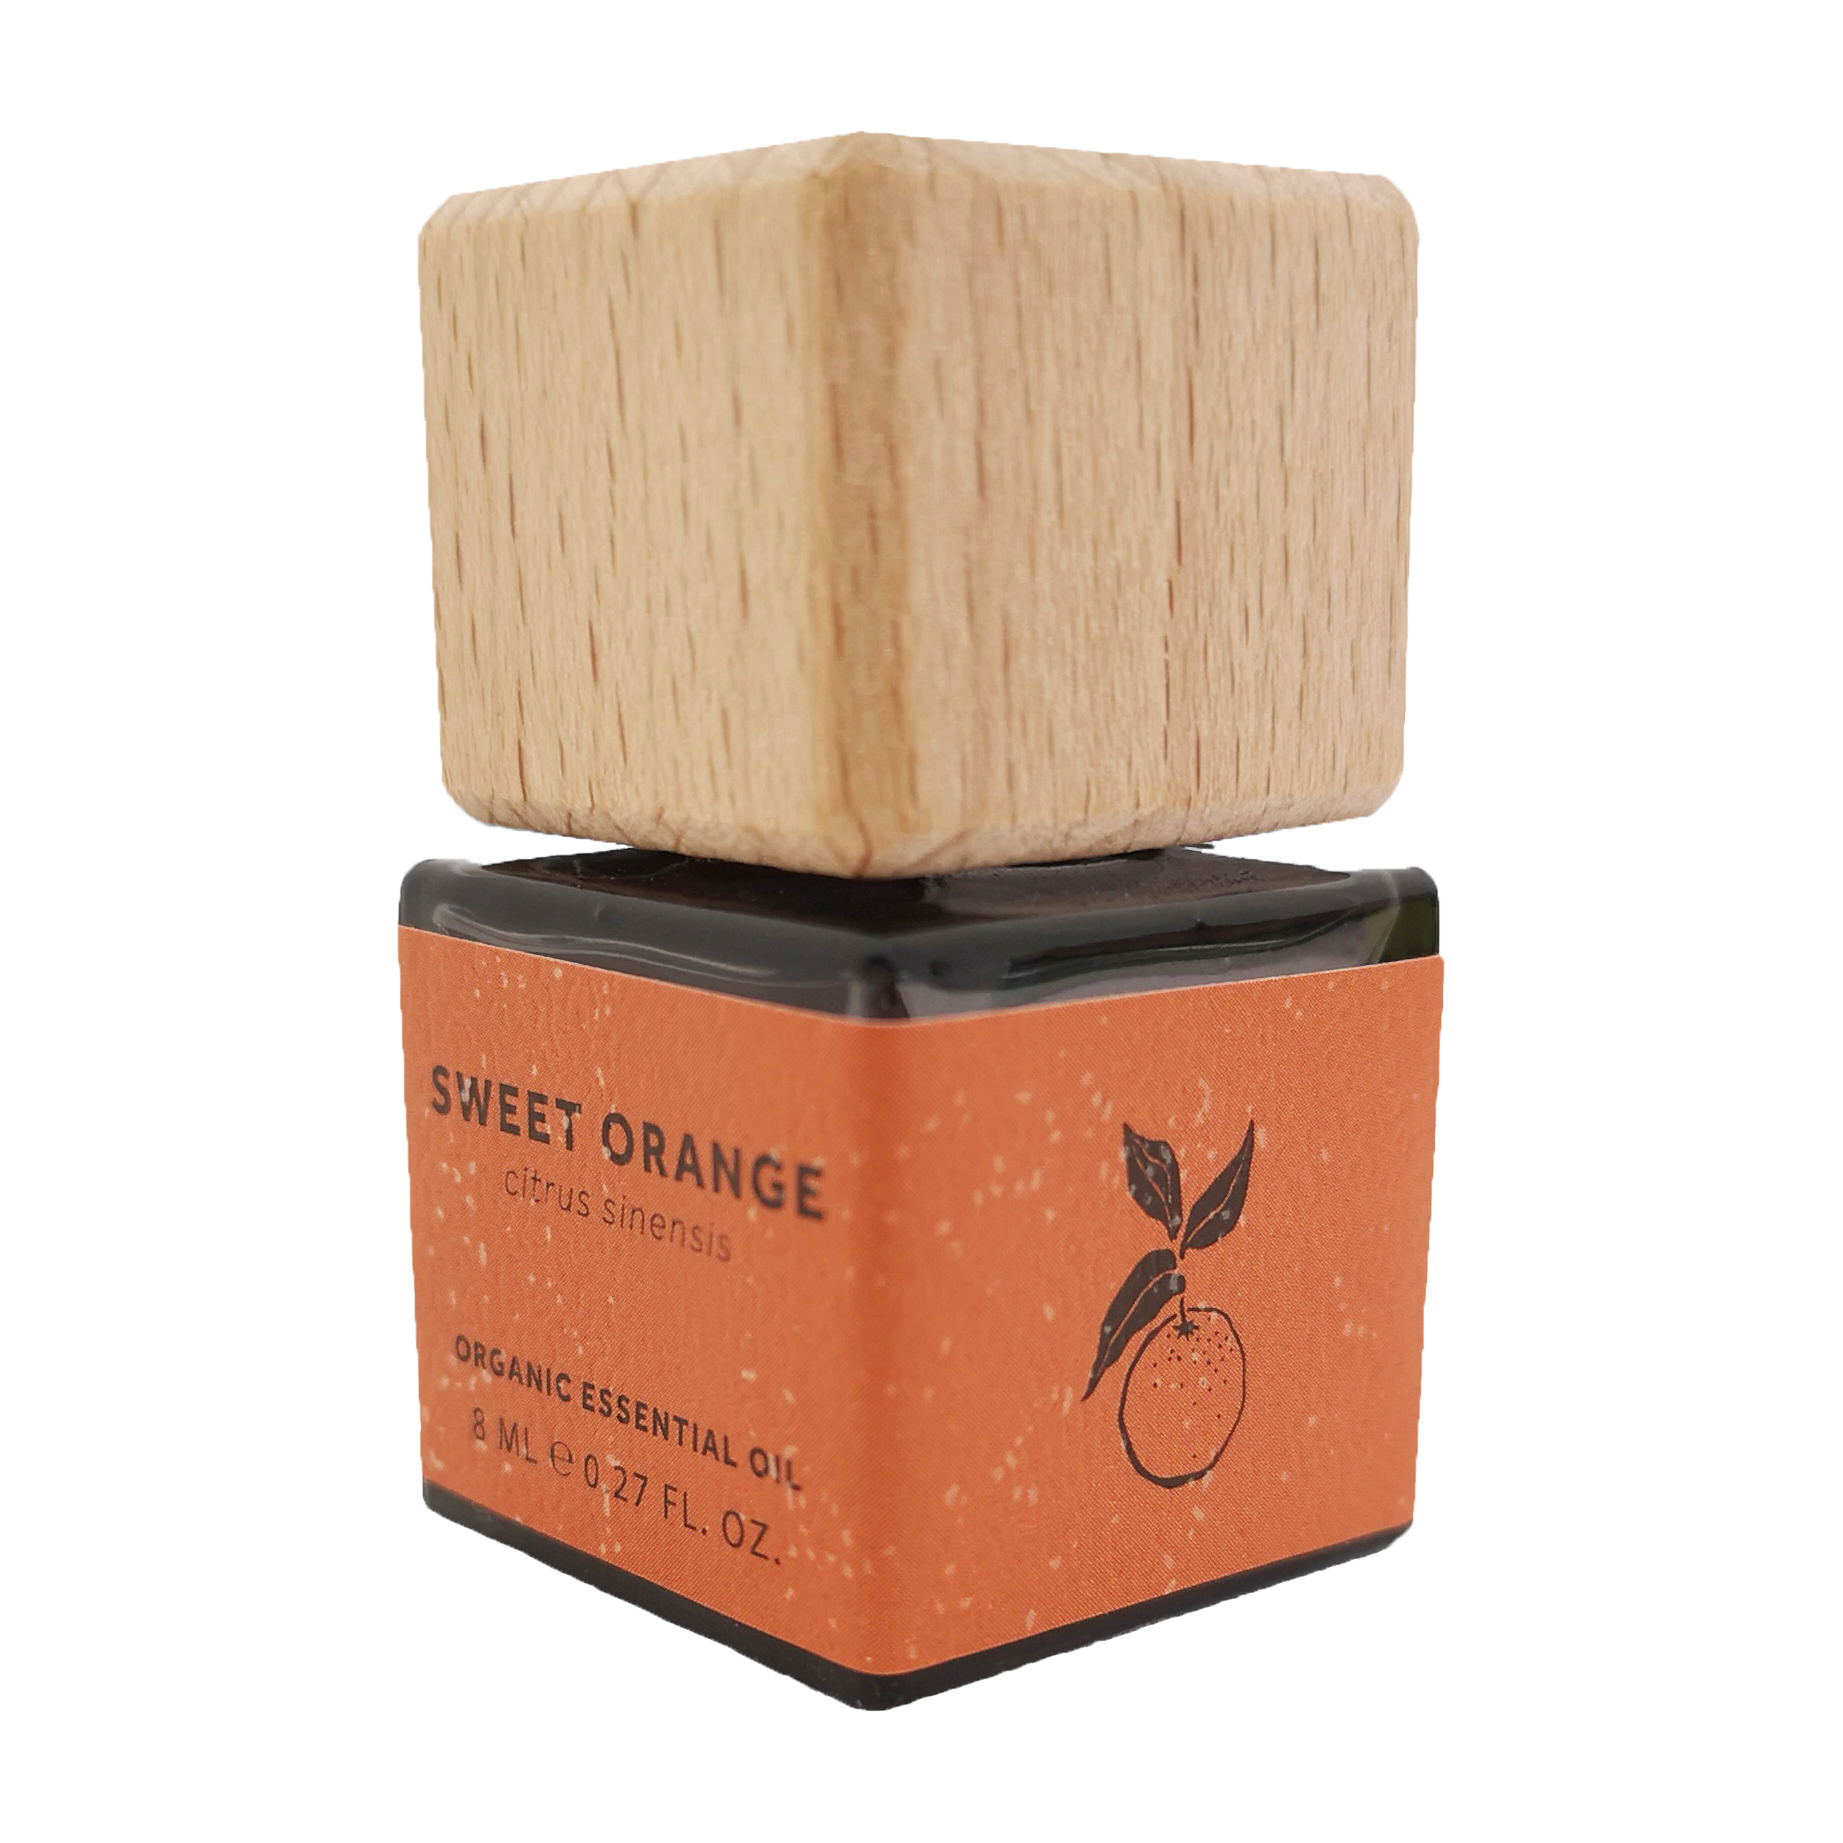 Sweet Orange Essential Oil - Organic, plastic free, zero waste, sustainable, Mos eco store, Portugal, Europe,